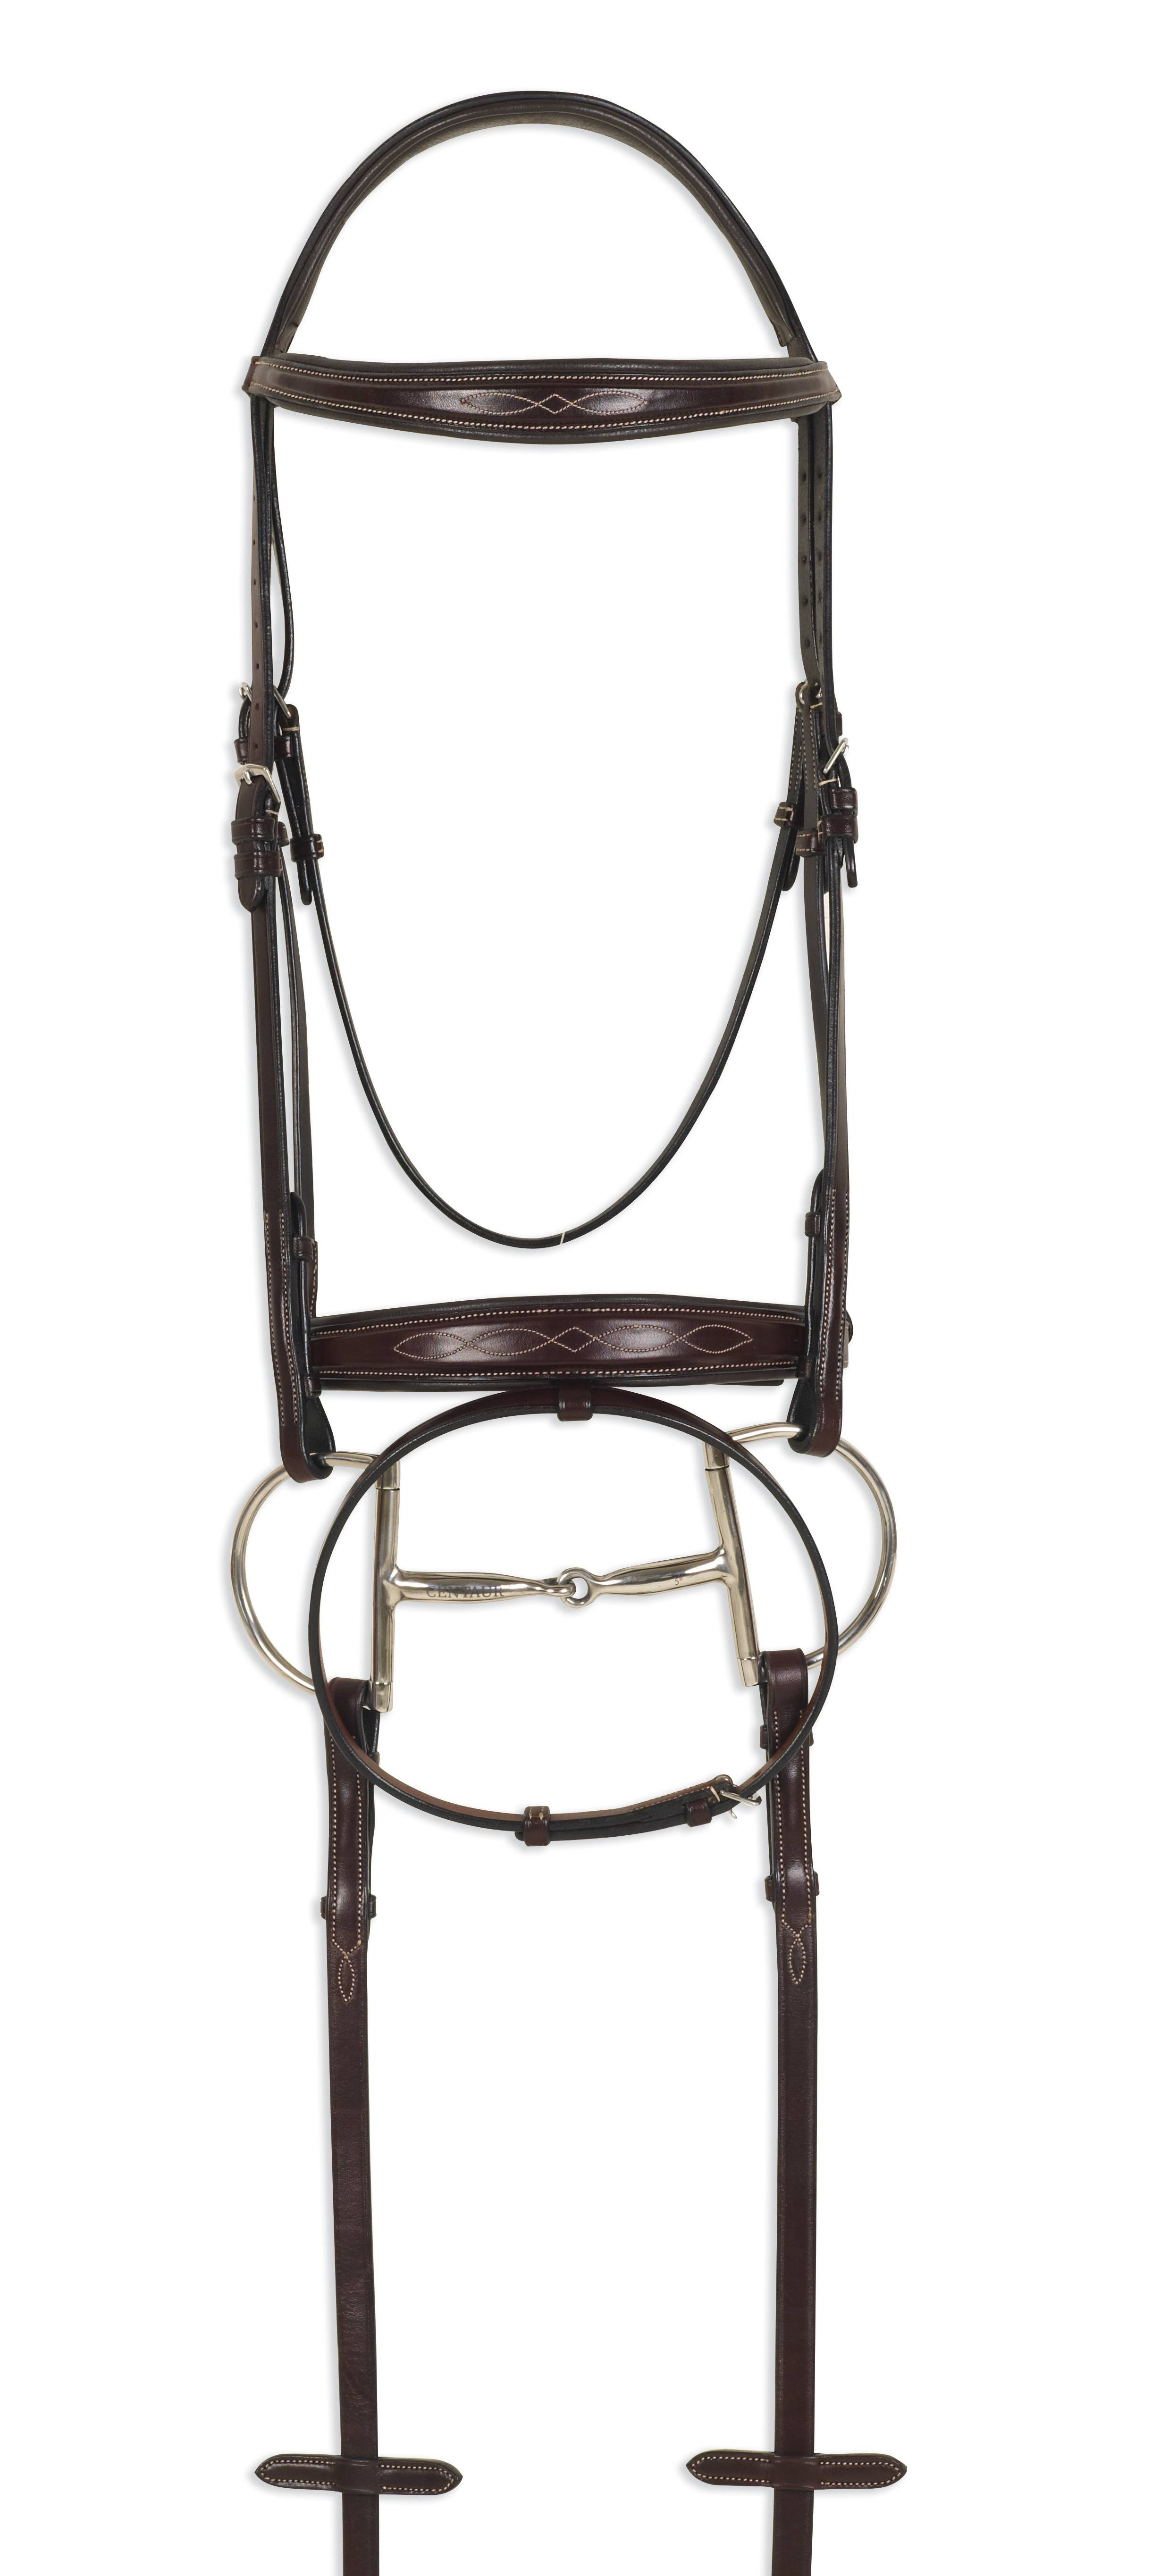 Ovation ATS Square Raised Taper Nose Fancy Stitch Bridle with Flash